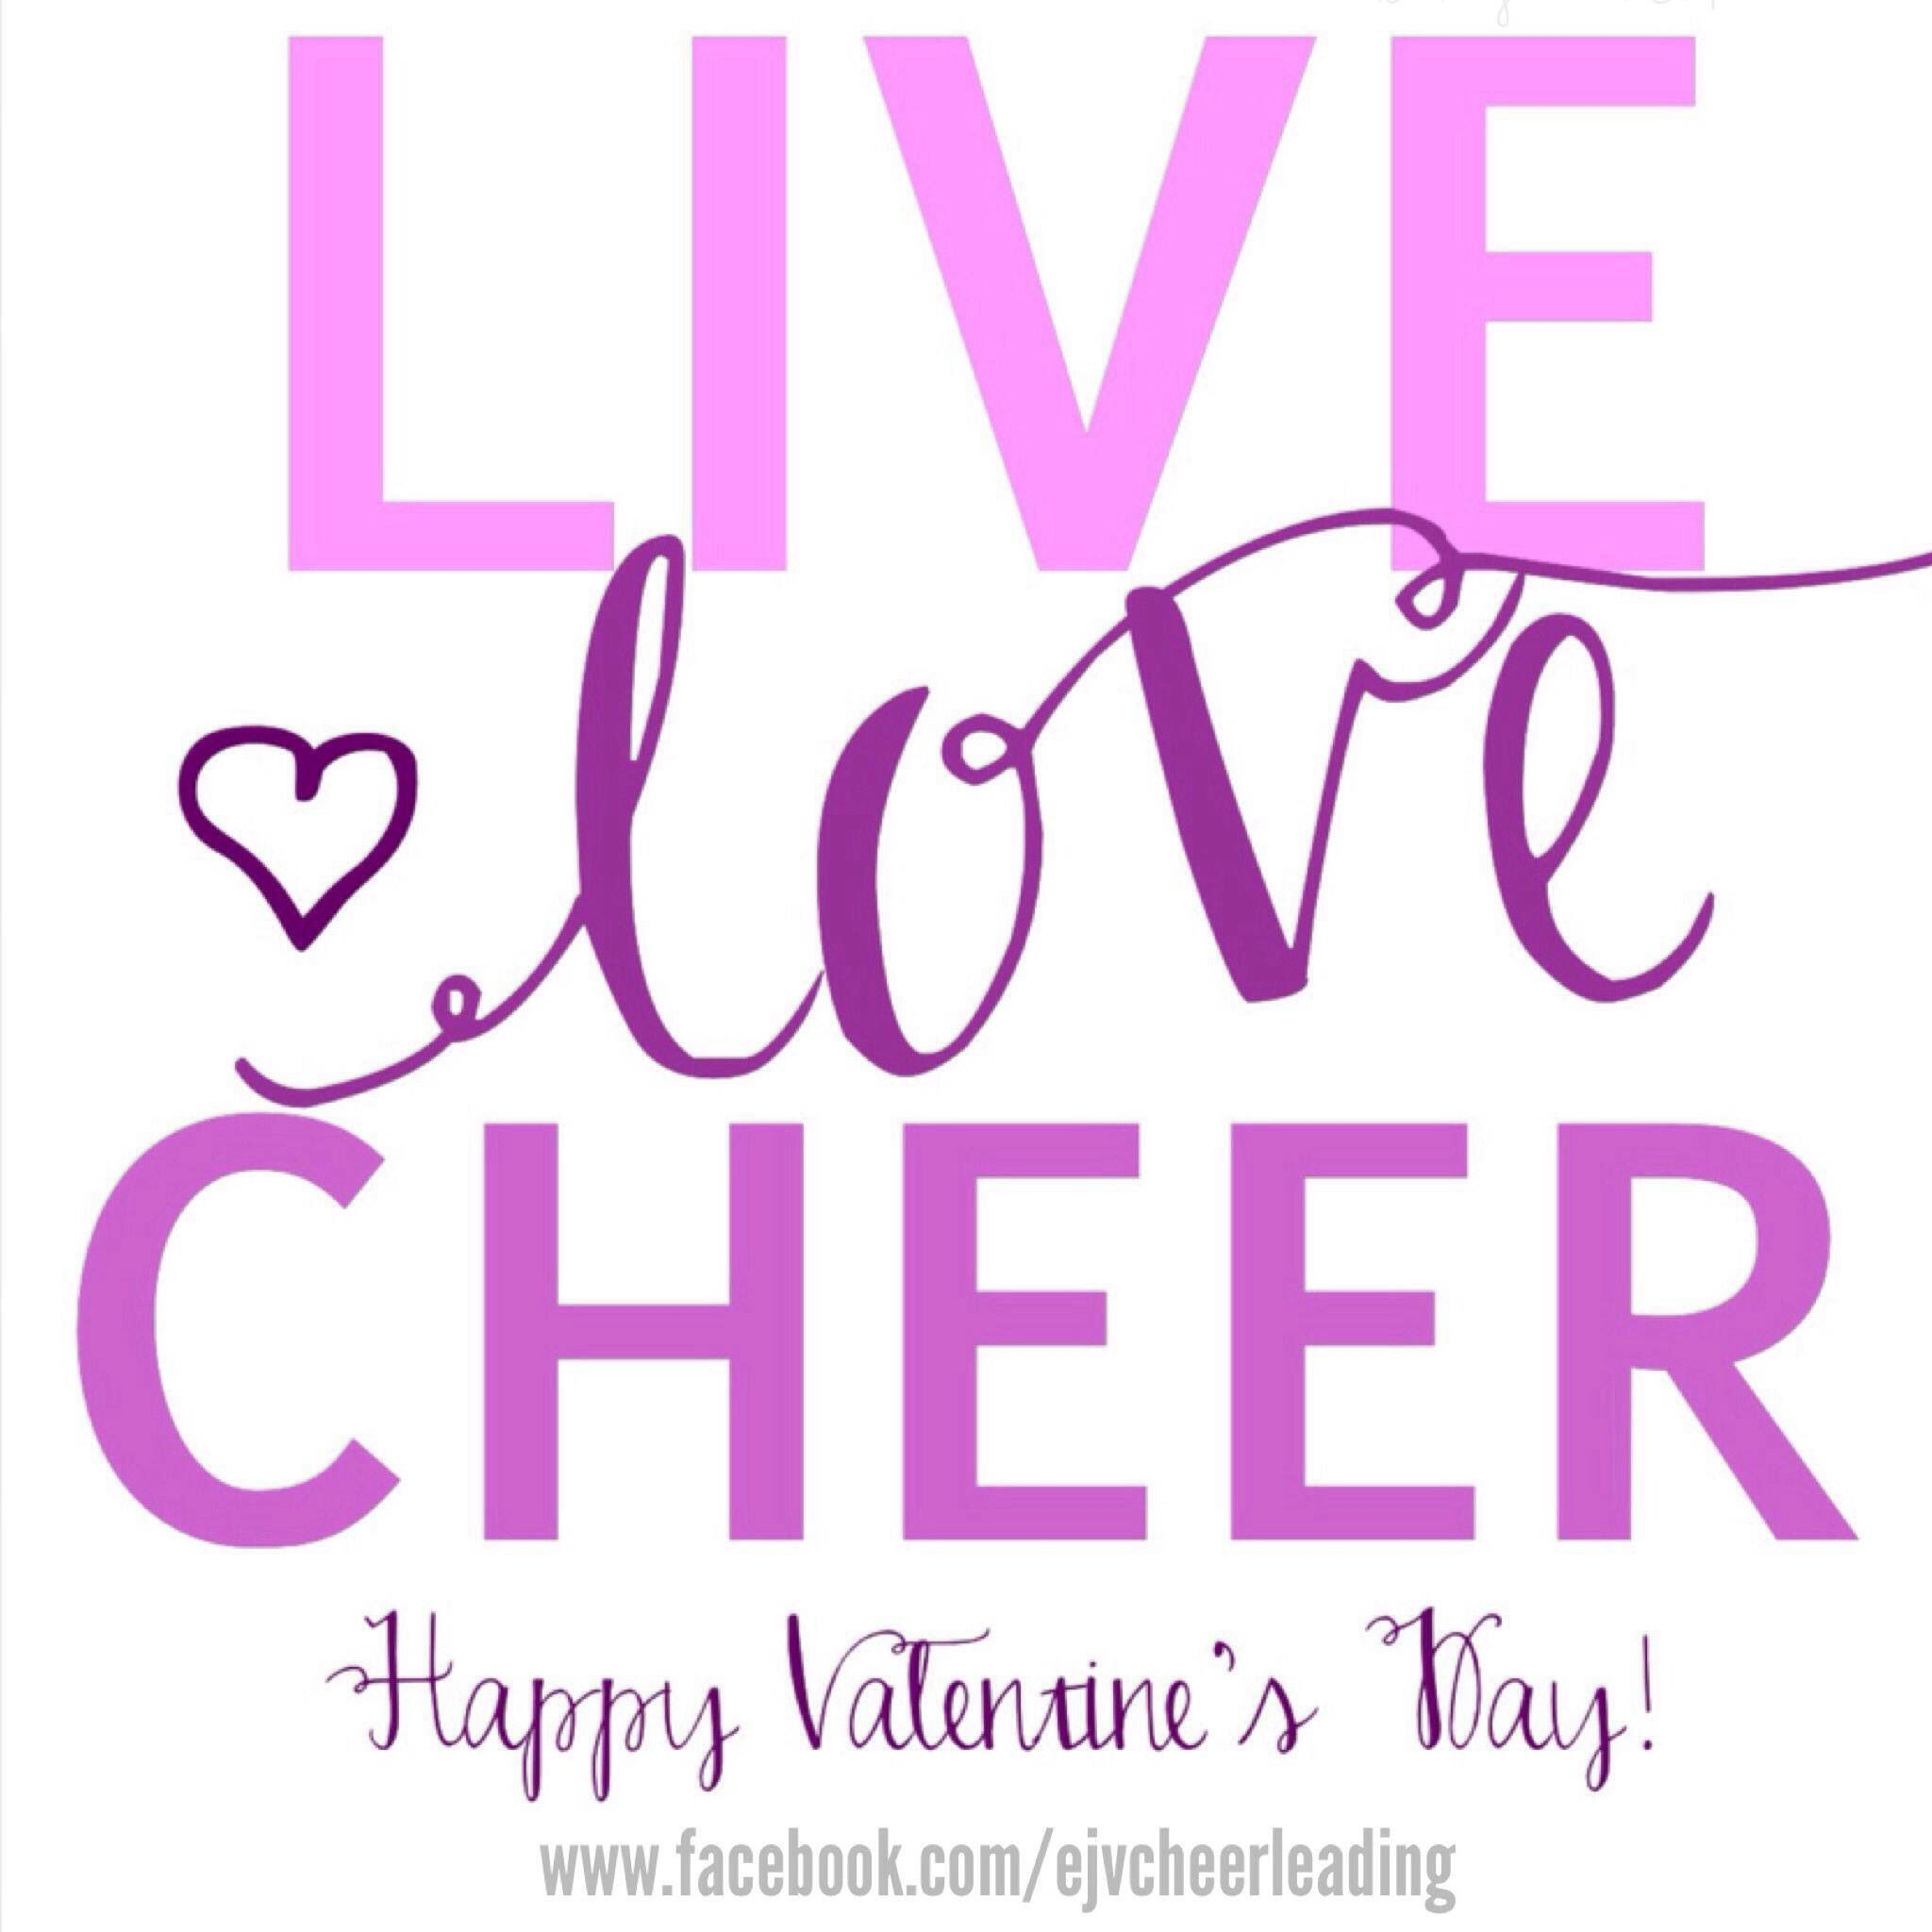 valentine's day cheer up quotes